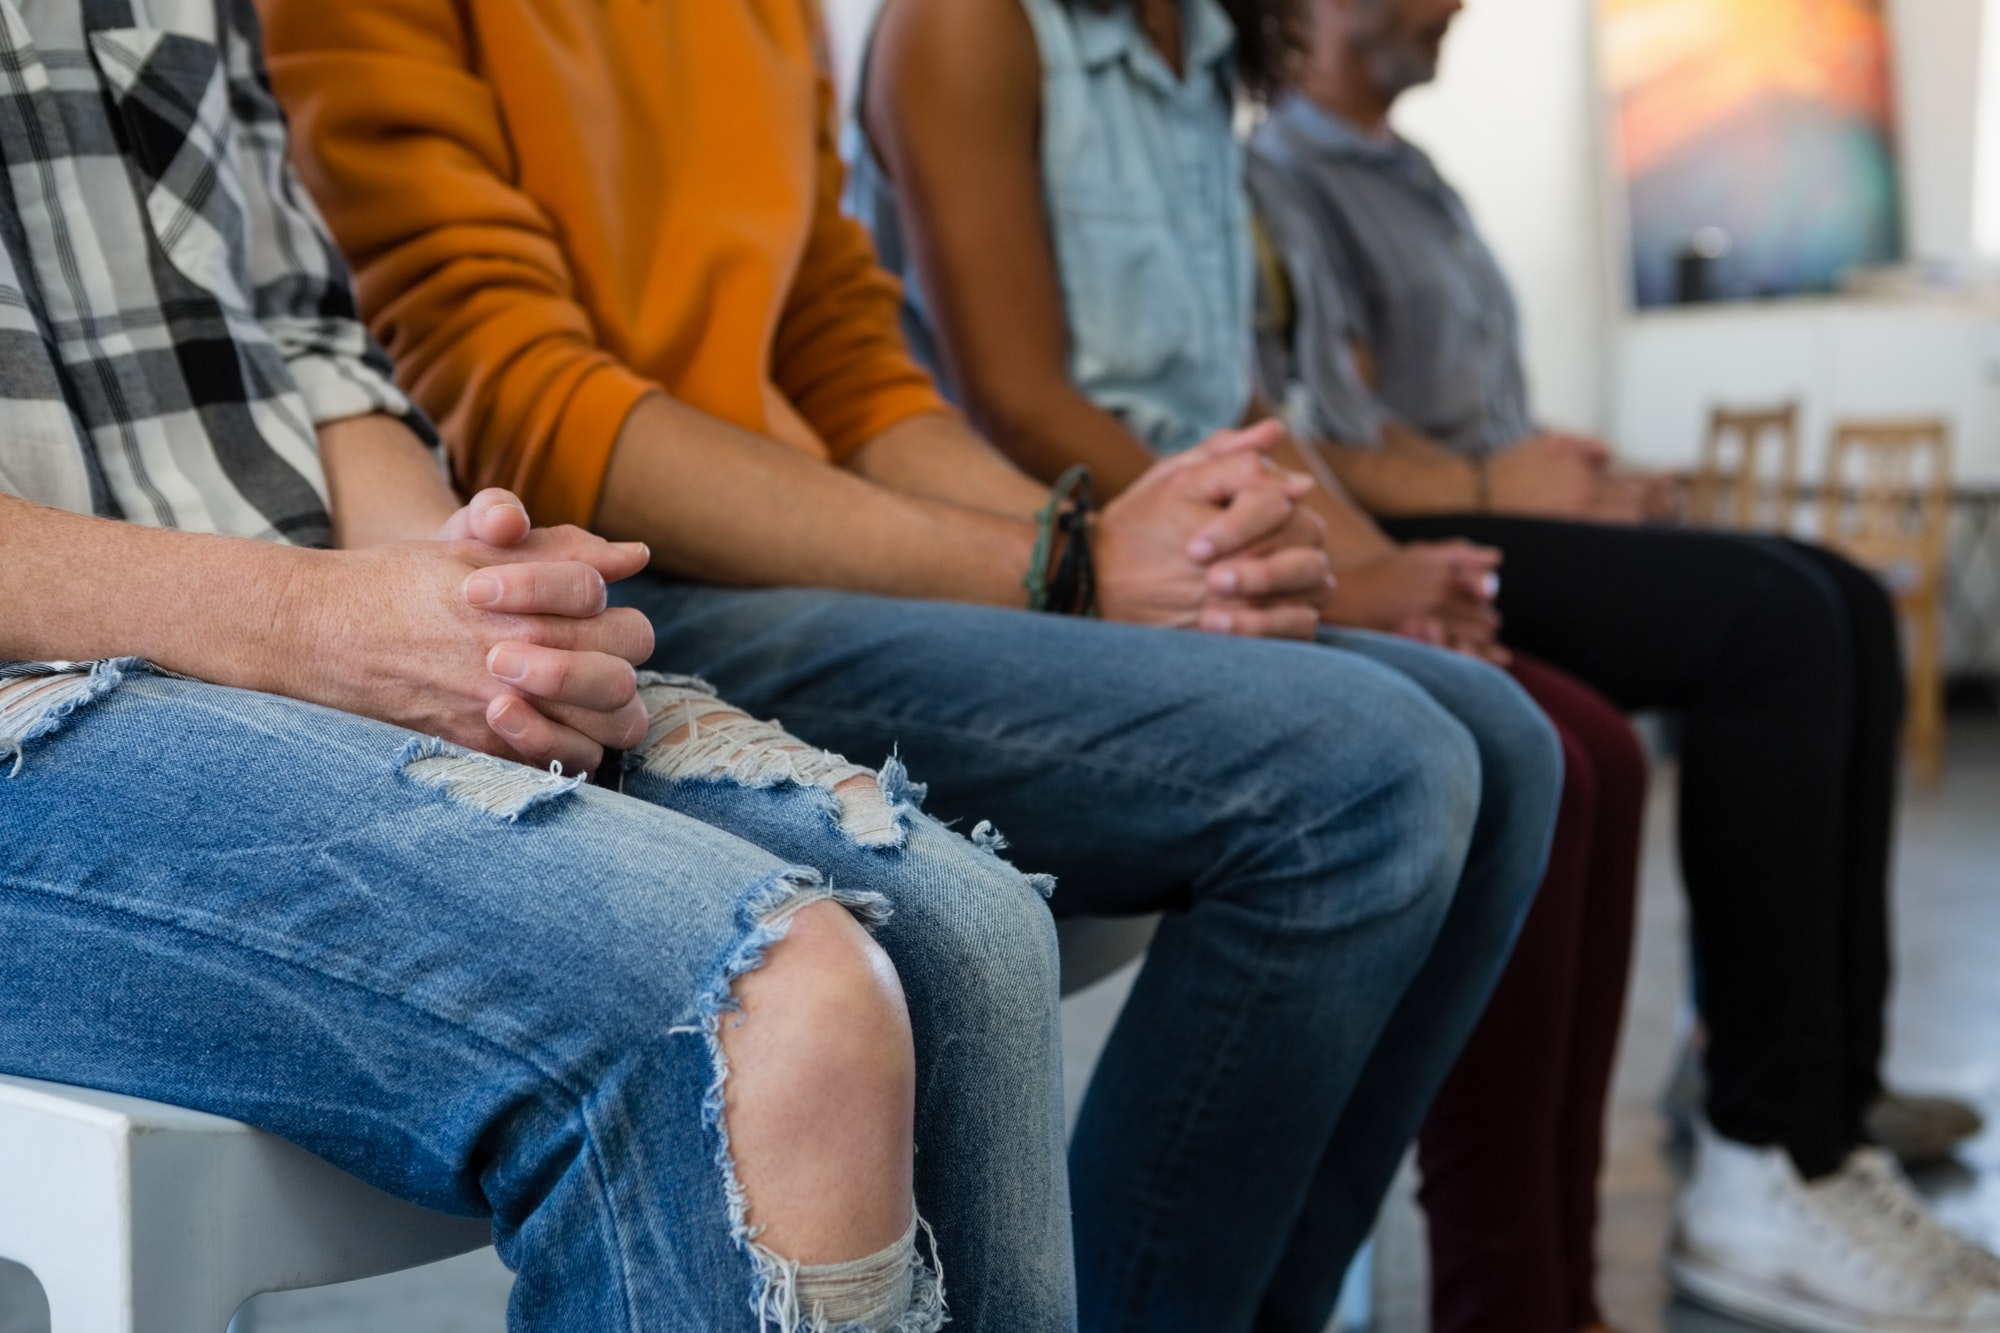 Adult students with hands clasped sitting on chair